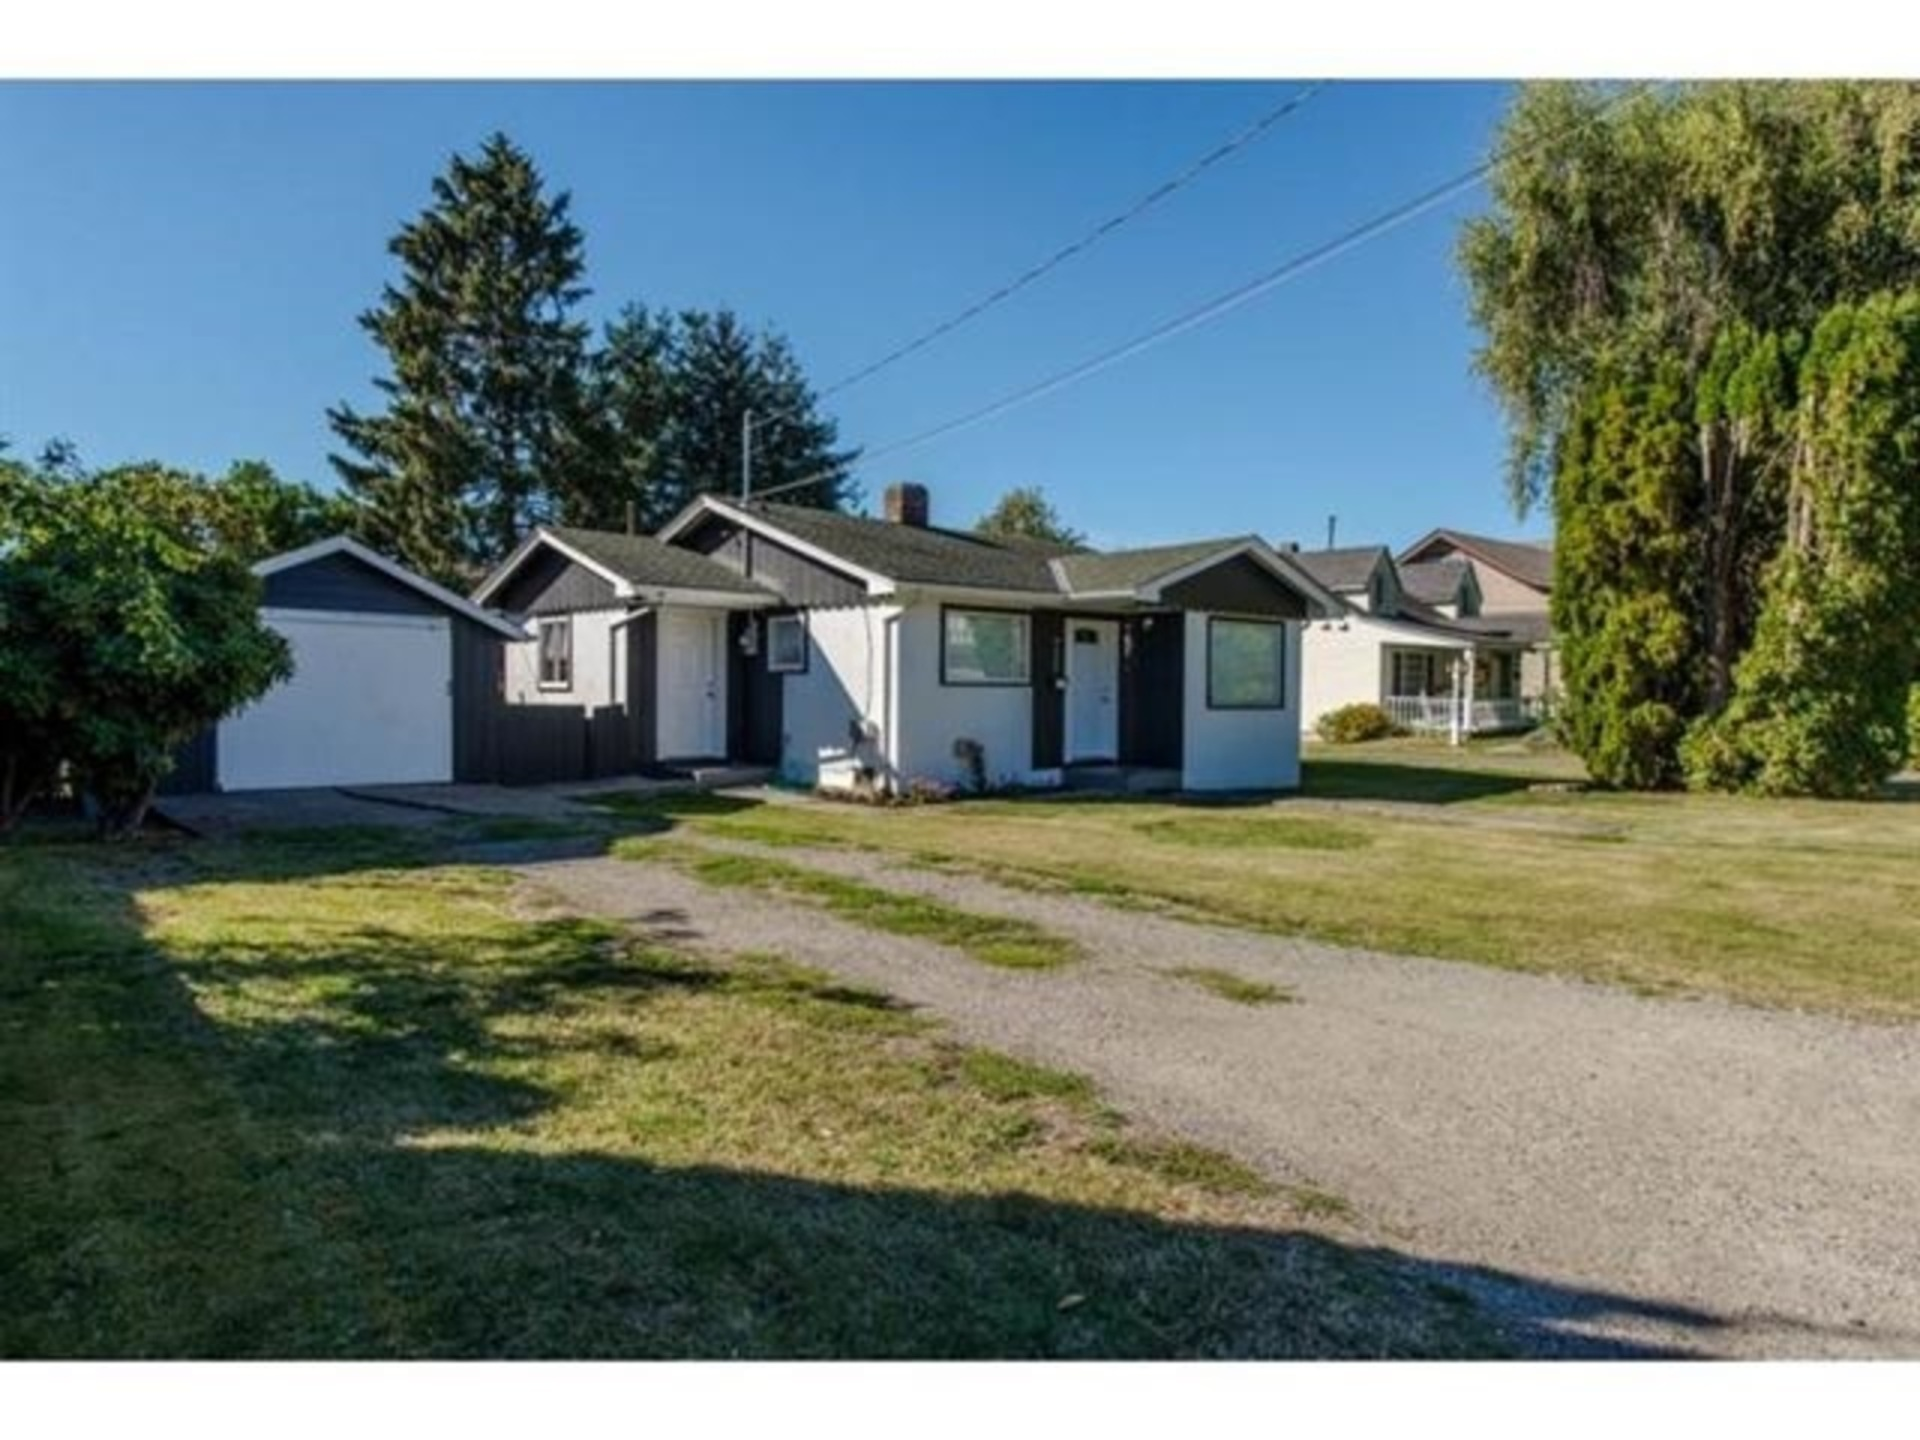 9435-coote-street-chilliwack-e-young-yale-chilliwack-01 at 9435 Coote Street, Chilliwack E Young-Yale, Chilliwack